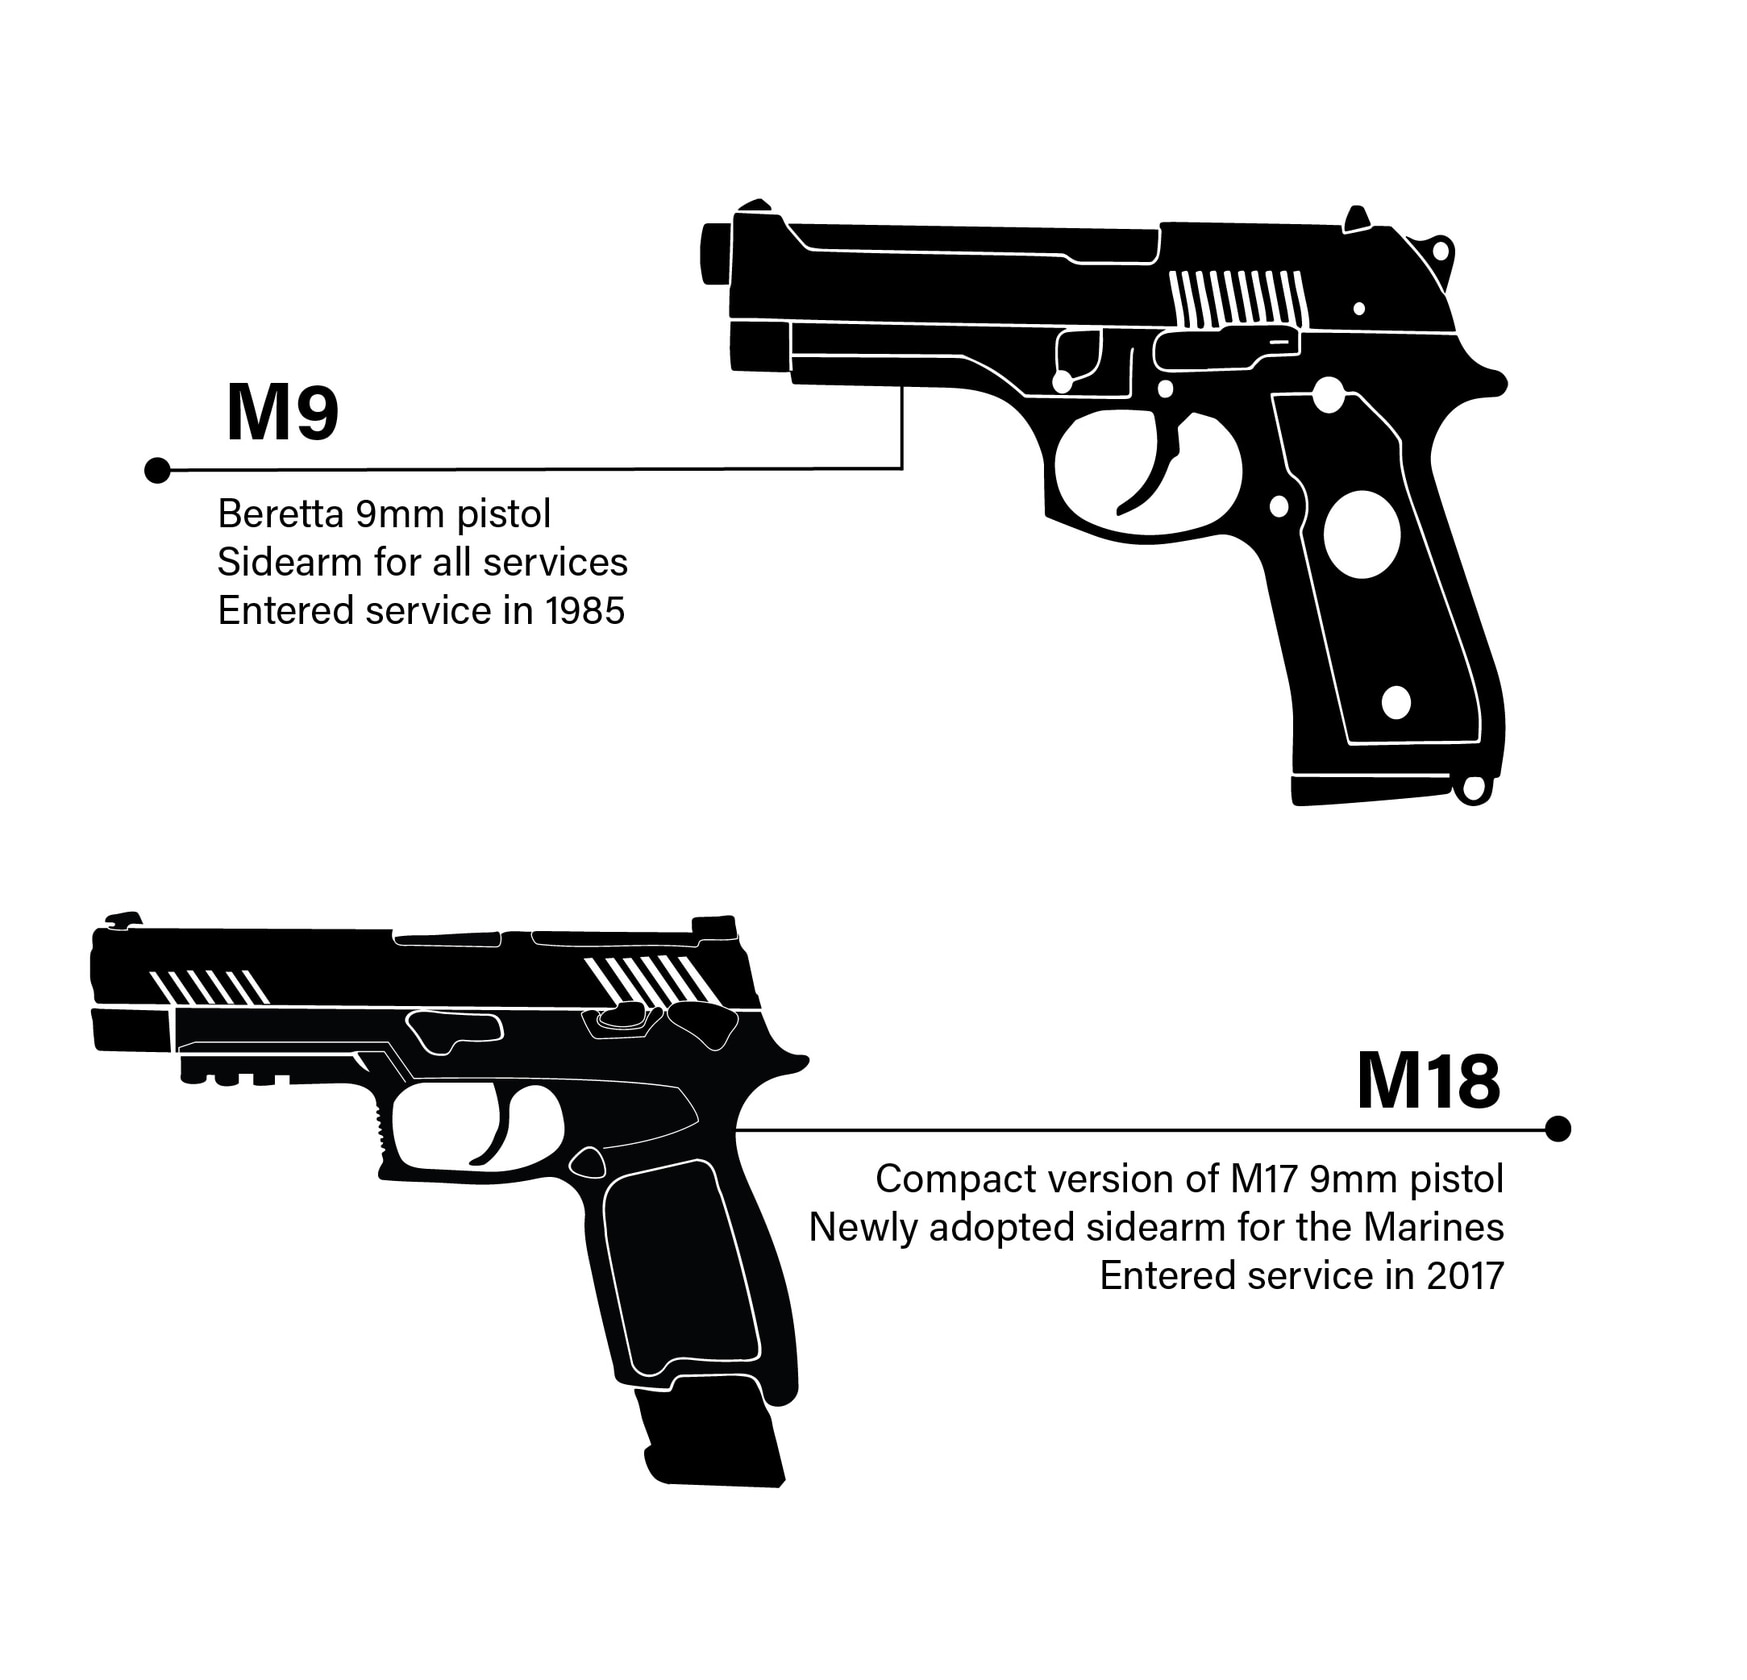 All service branches recently adopted the Modular Handgun System as their issued sidearm, replacing the M9 pistol that's been standard carry since the 1980s. (Jacqueline Belker/Marine Corps Times)